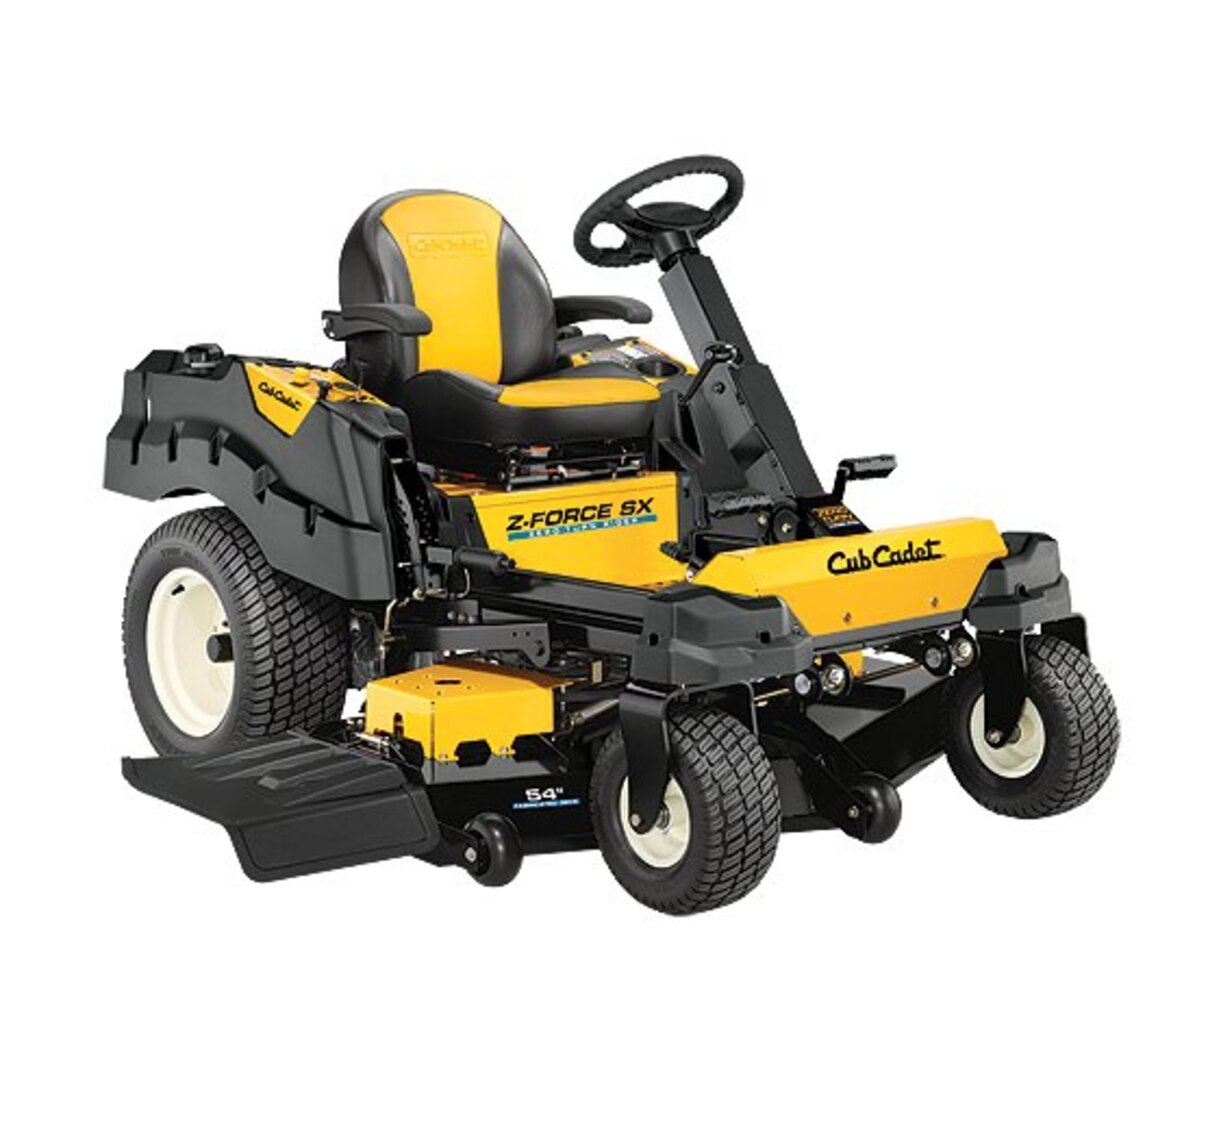 CUB CADET DEALER - Richards Equipment Inc  Barrie, ON 705-721-5530